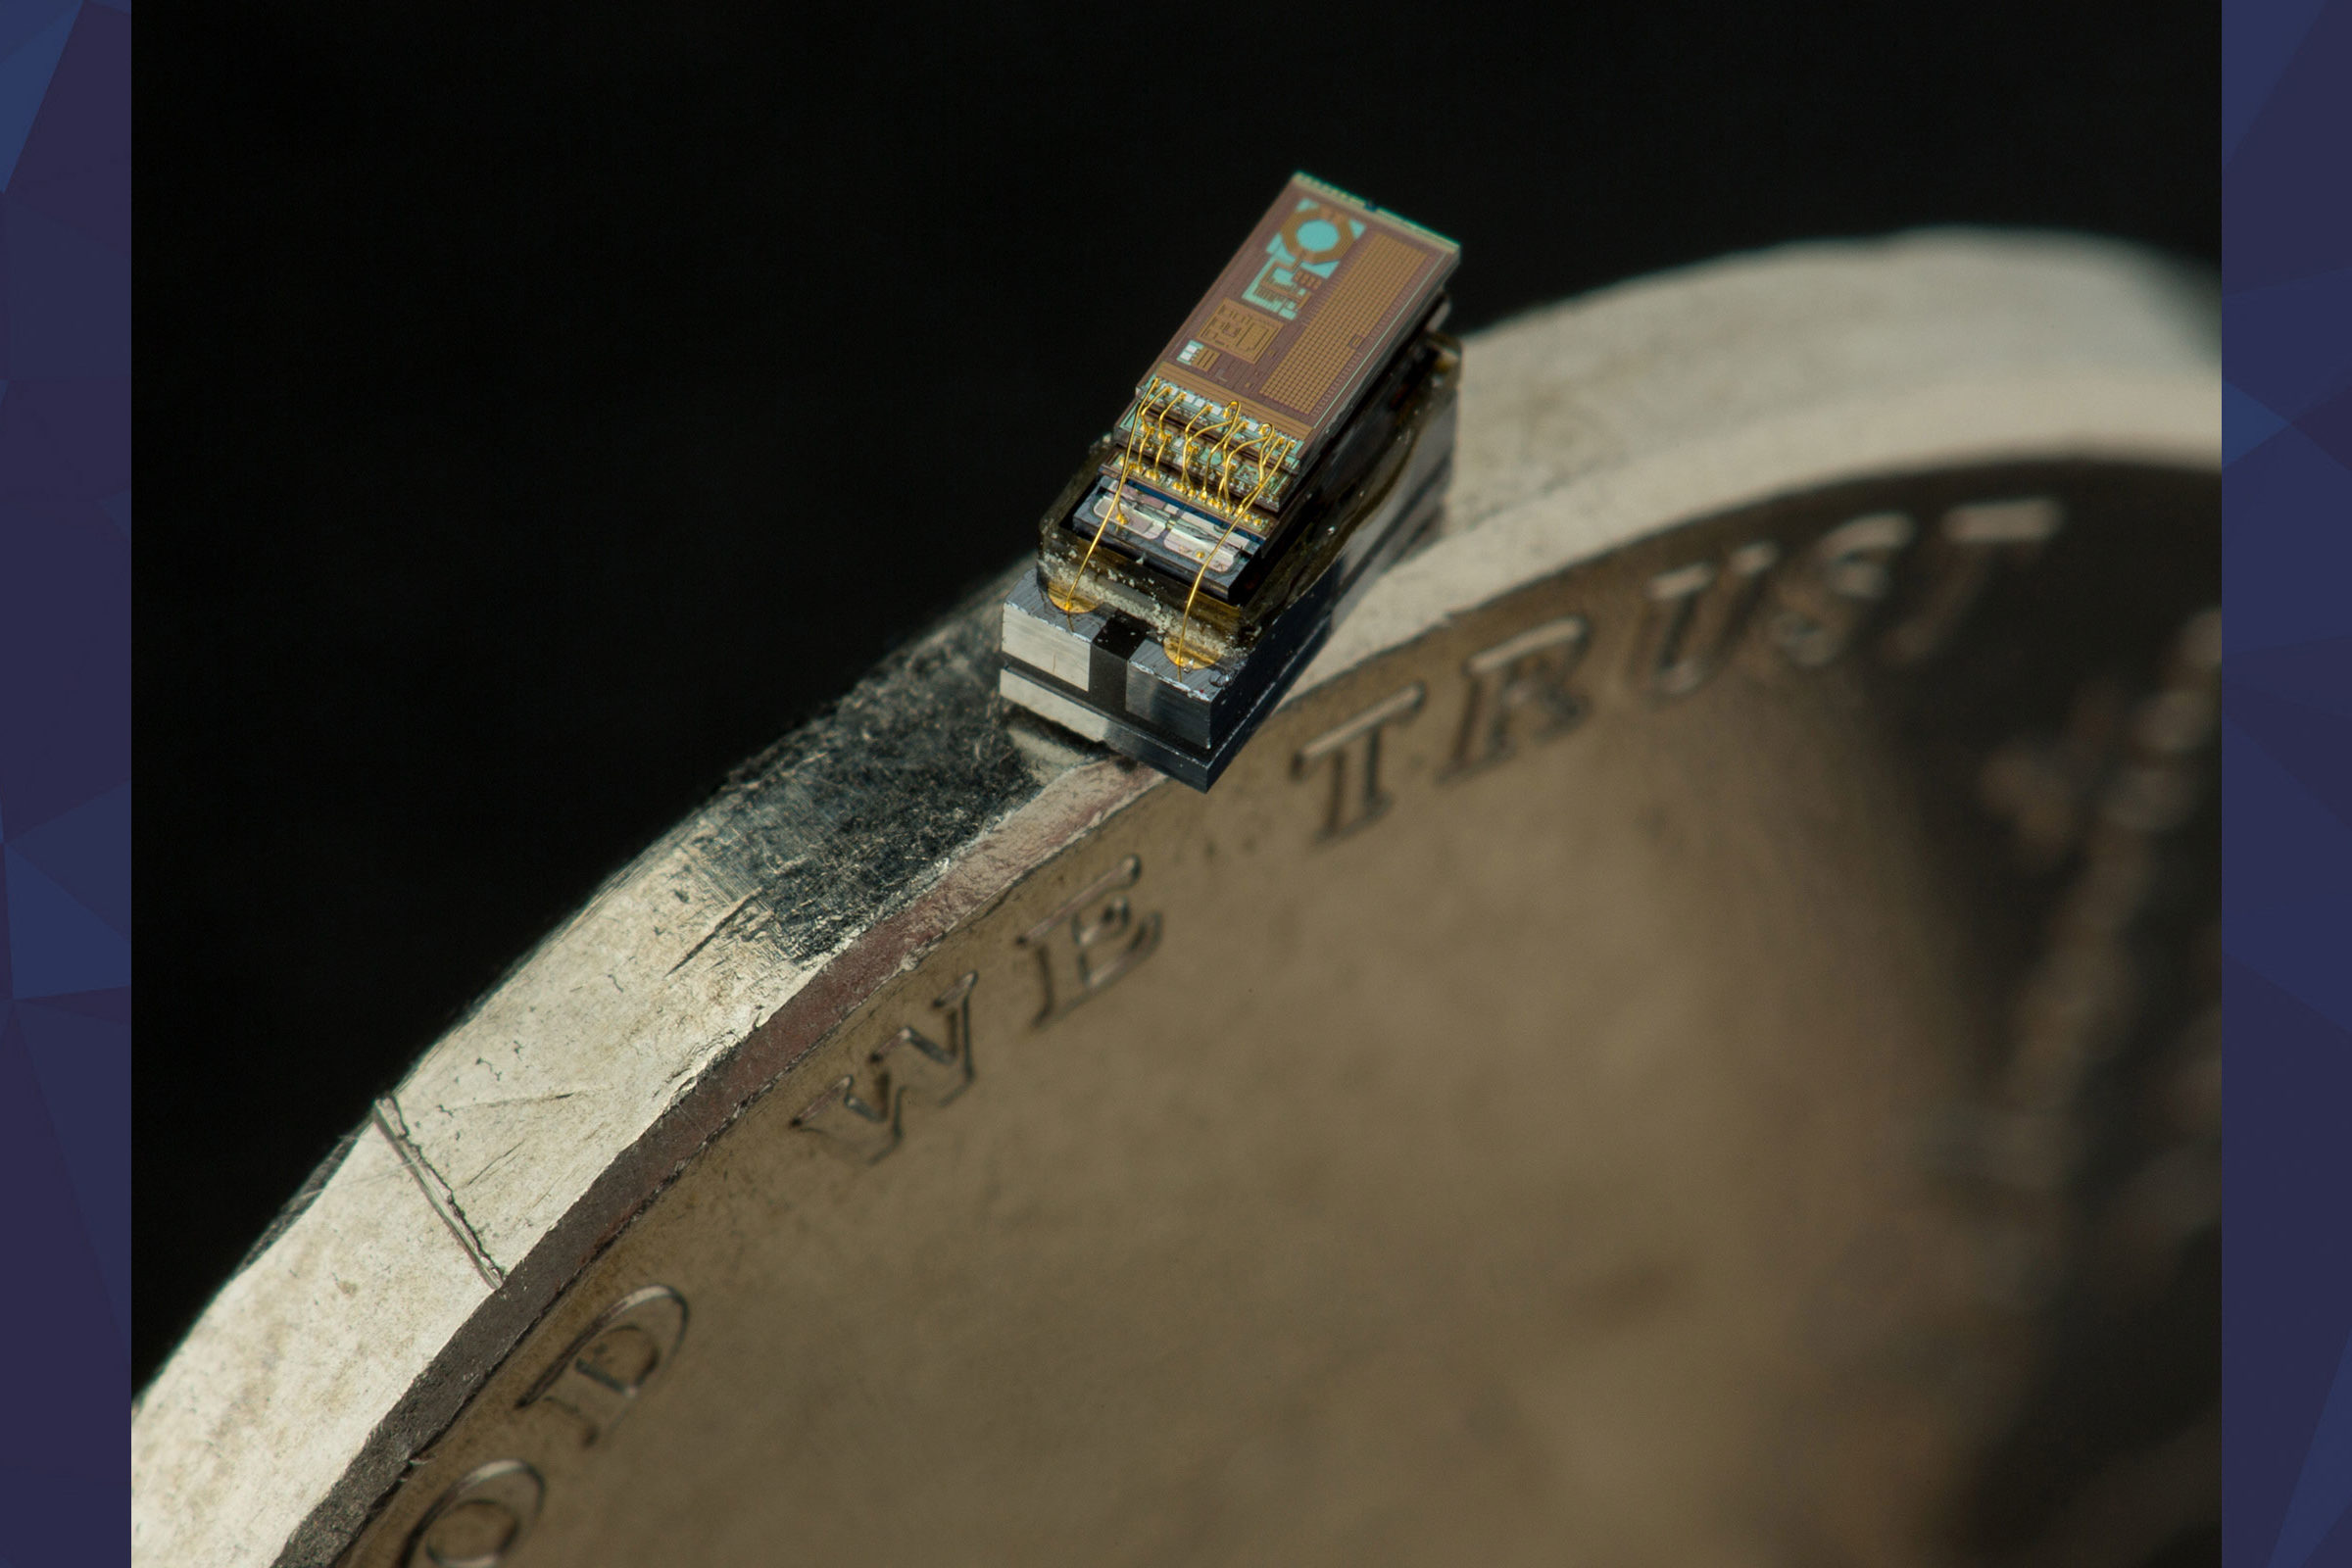 Micro computer sitting on the edge of a quarter